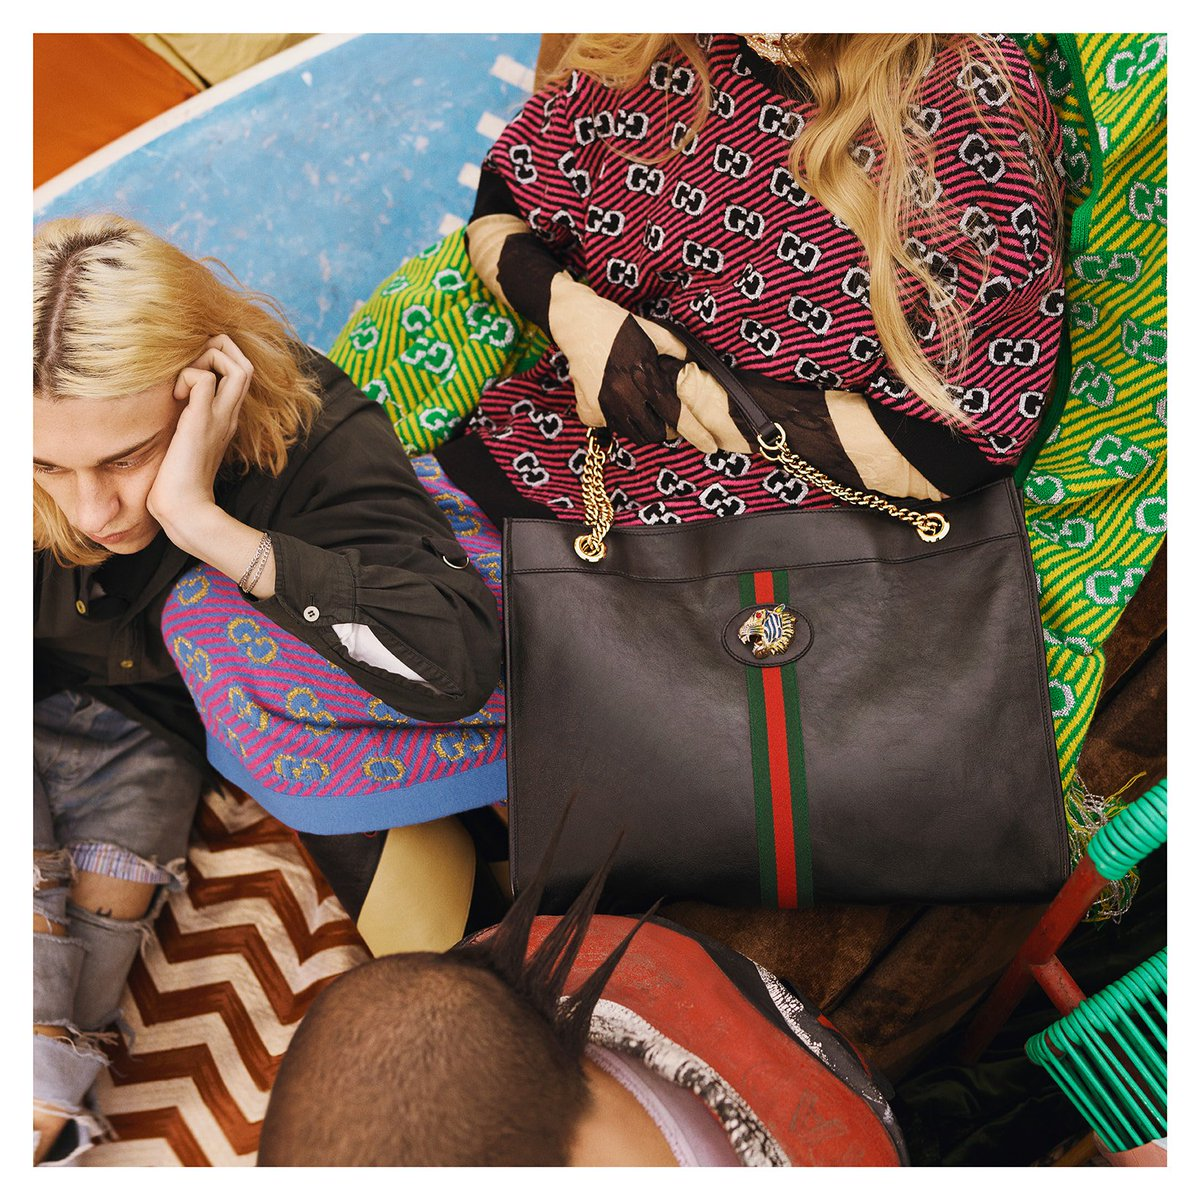 1793db26e #gift #luxury Up close with the #GucciRajah tote featuring the tiger head,